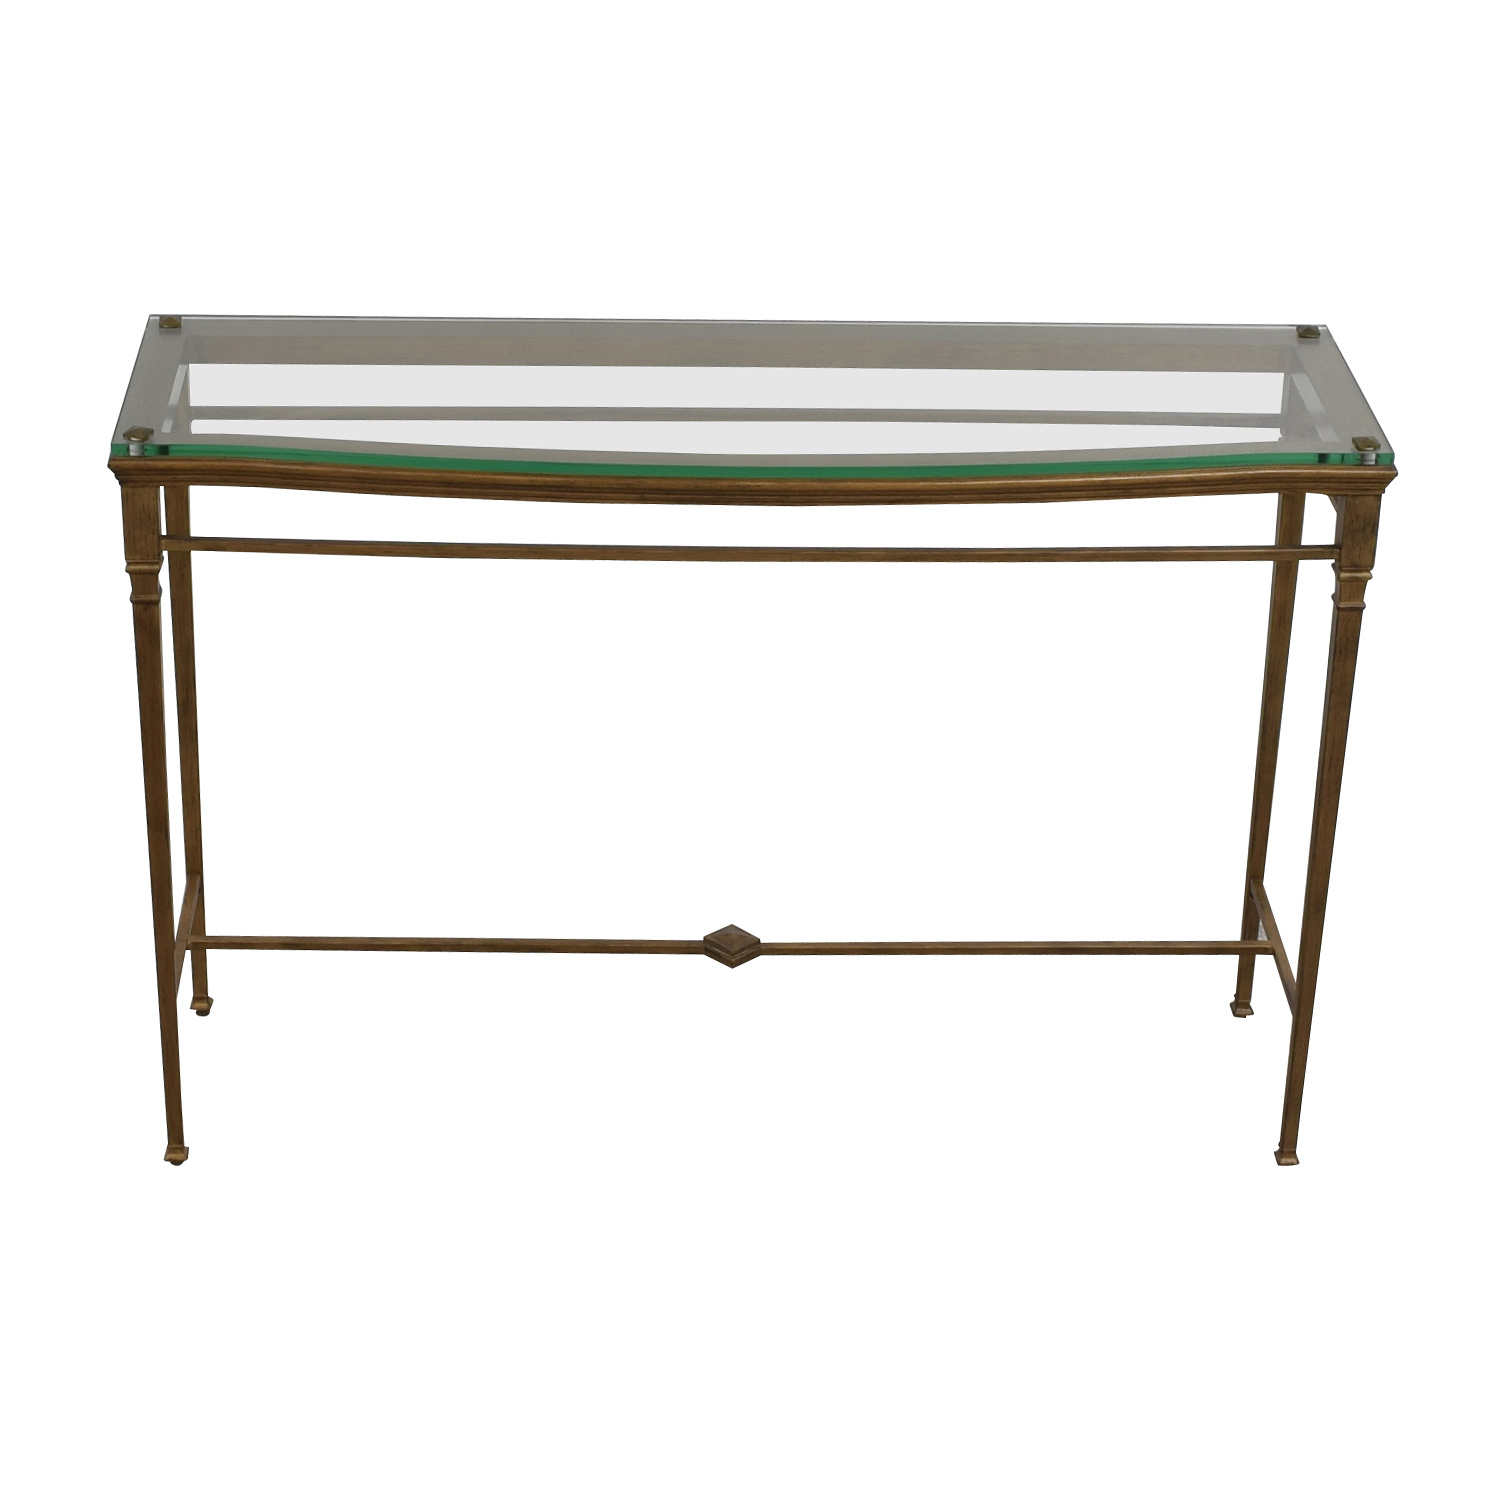 Pier 1 Foyer Metal and Glass Entry Table sale